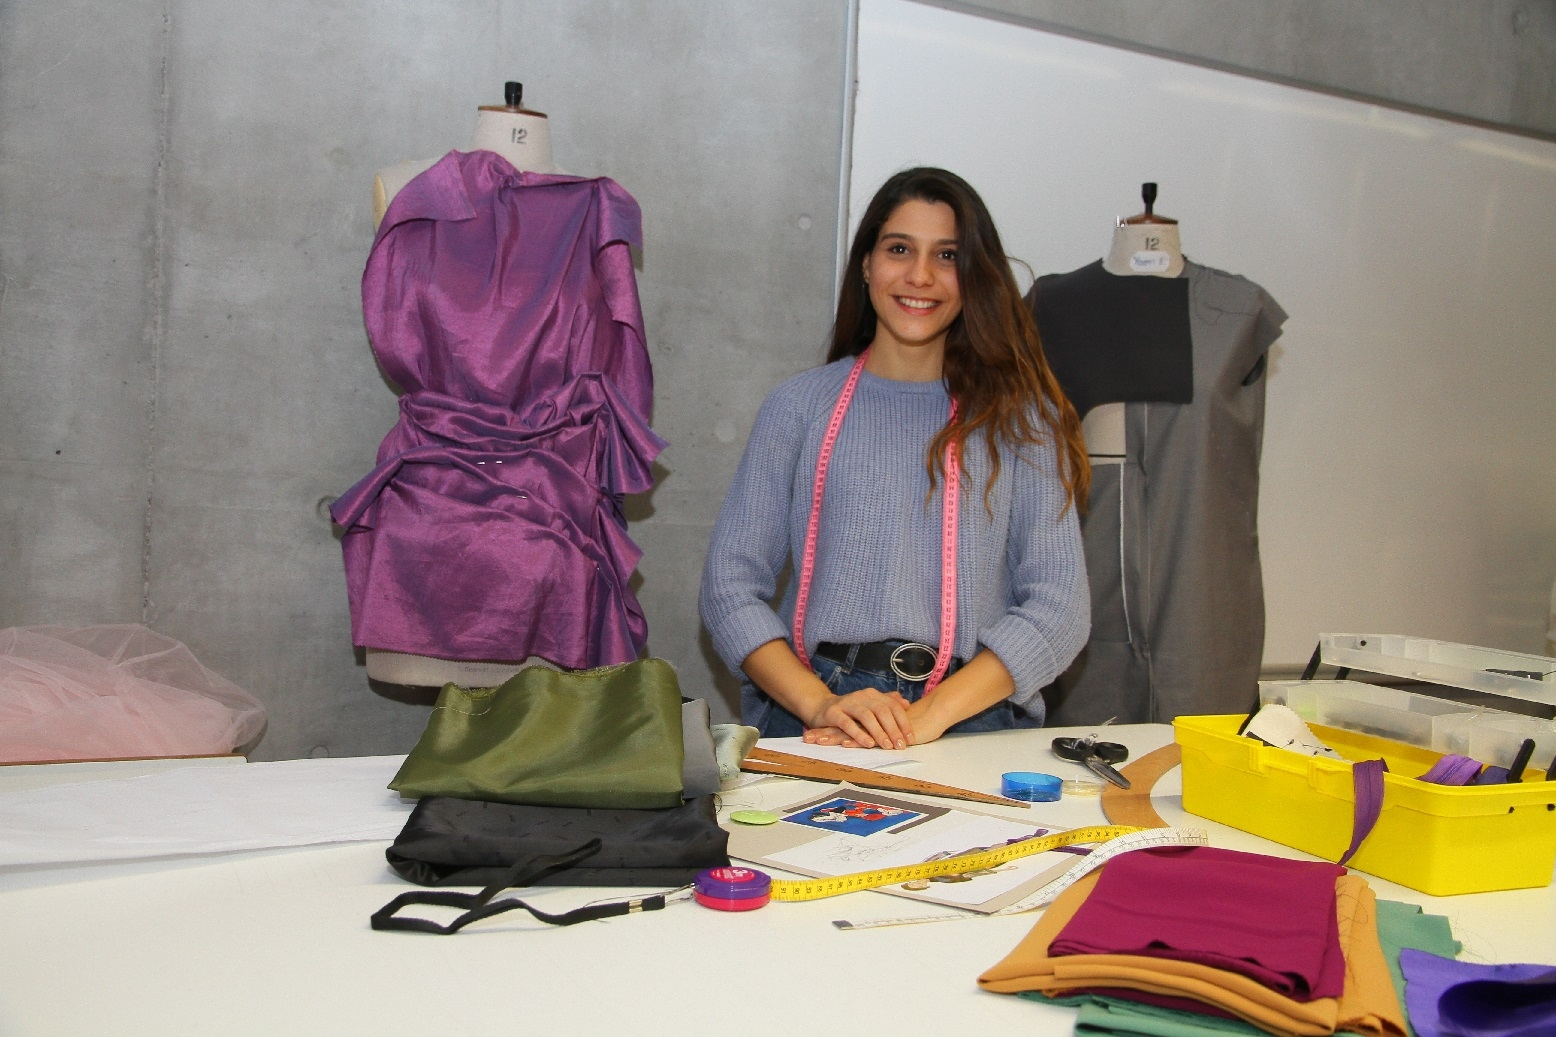 YOUNG FASHION DESIGNER OF IUE CREATED DESIGNS FOR CABIN CREW